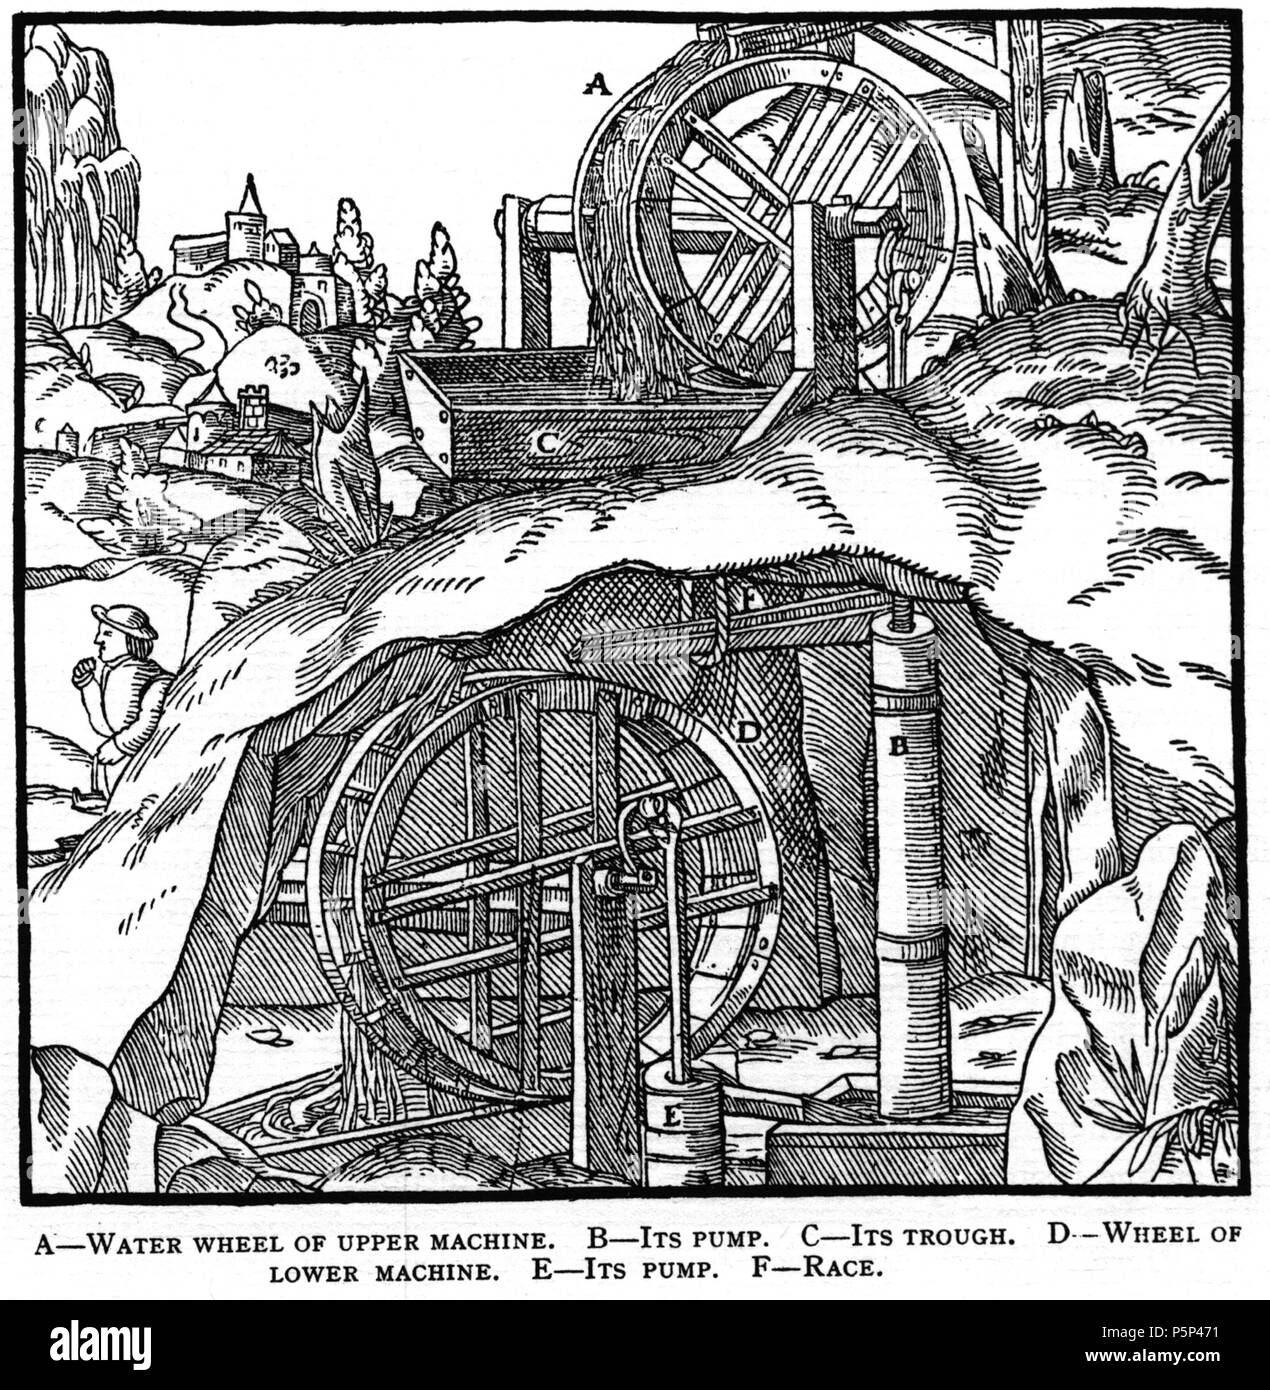 N/A. Woodcut illustration from De re metallica by Georgius Agricola. This is a 300dpi scan from the 1950 Dover edition of the 1913 Hoover translation of the 1556 reference. The Dover edition has slightly smaller size prints than the Hoover (which is a rare book). The woodcuts were recreated for the 1913 printing. Filenames (except for the title page) indicate the chapter (2, 3, 5, etc.) followed by the sequential number of the illustration. 2 May 2005, 07:06:28. TCO (talk) 223 Book6-30 - Stock Image